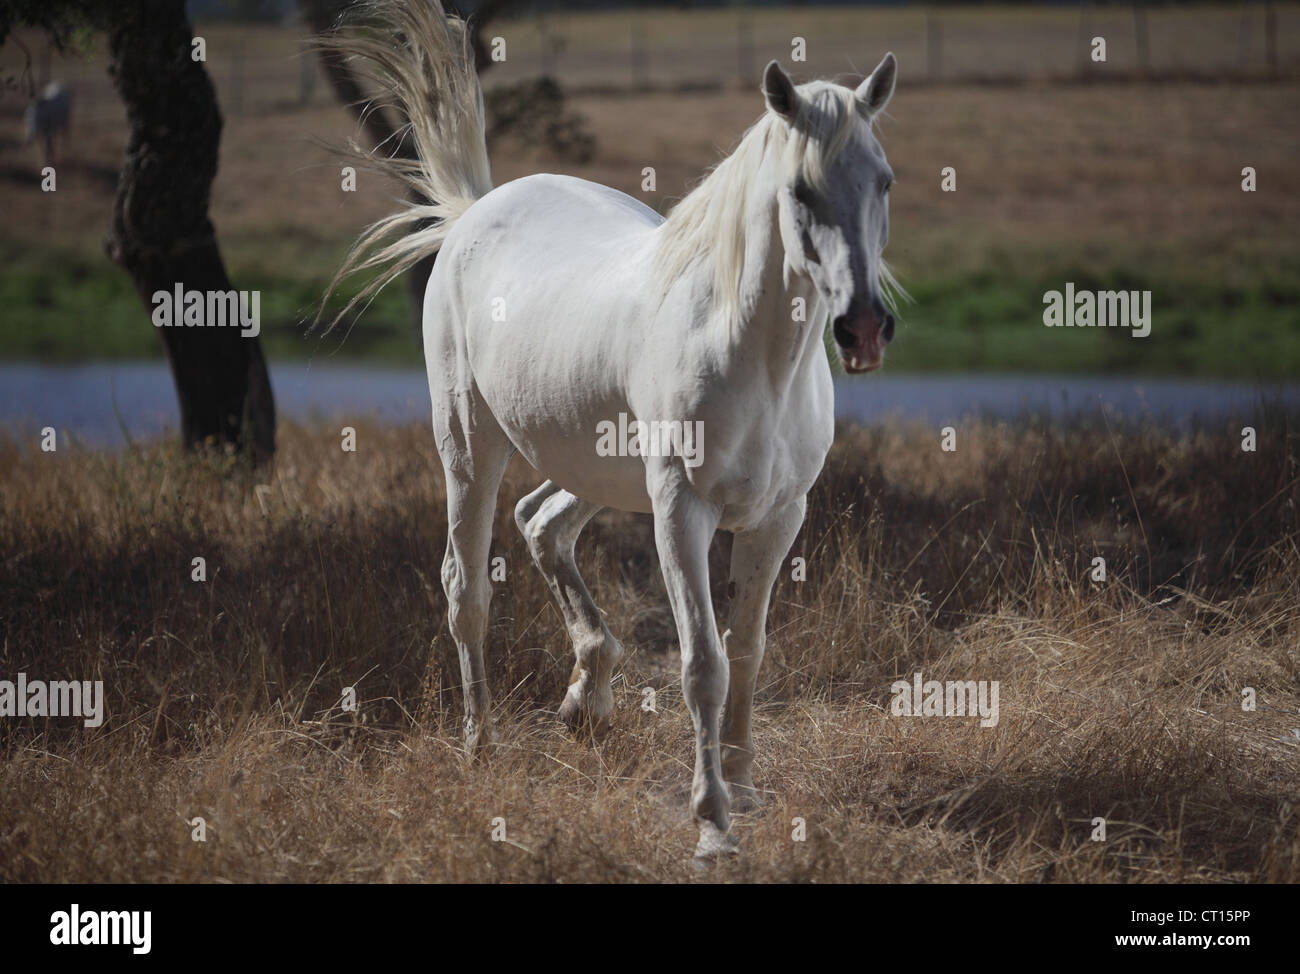 Horse walking in dry field - Stock Image